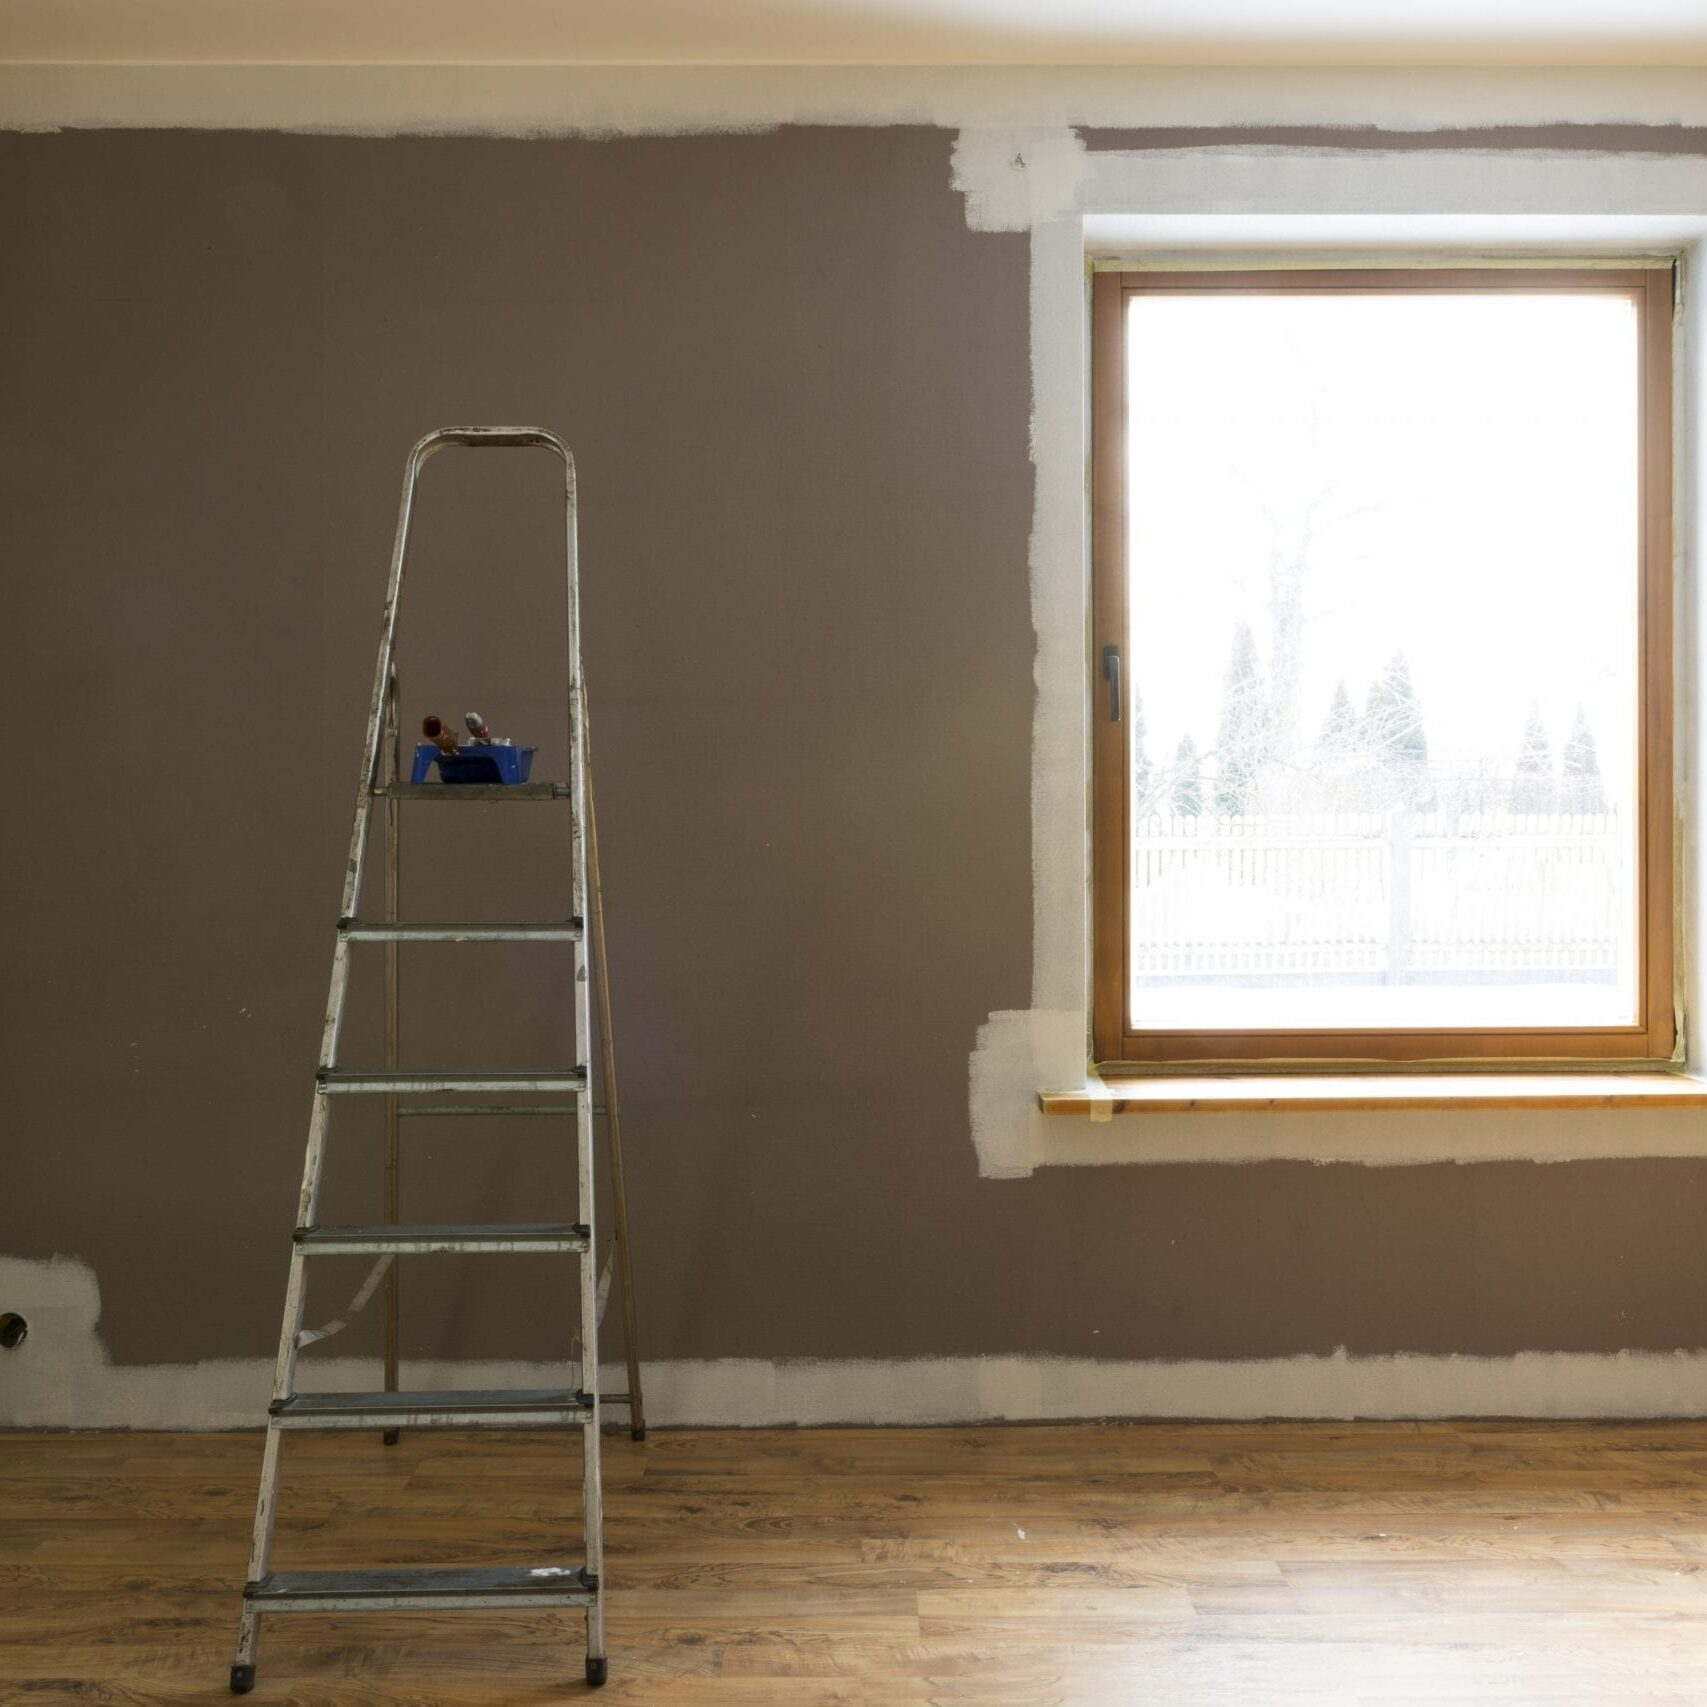 room being painted during home renovation in barnsley